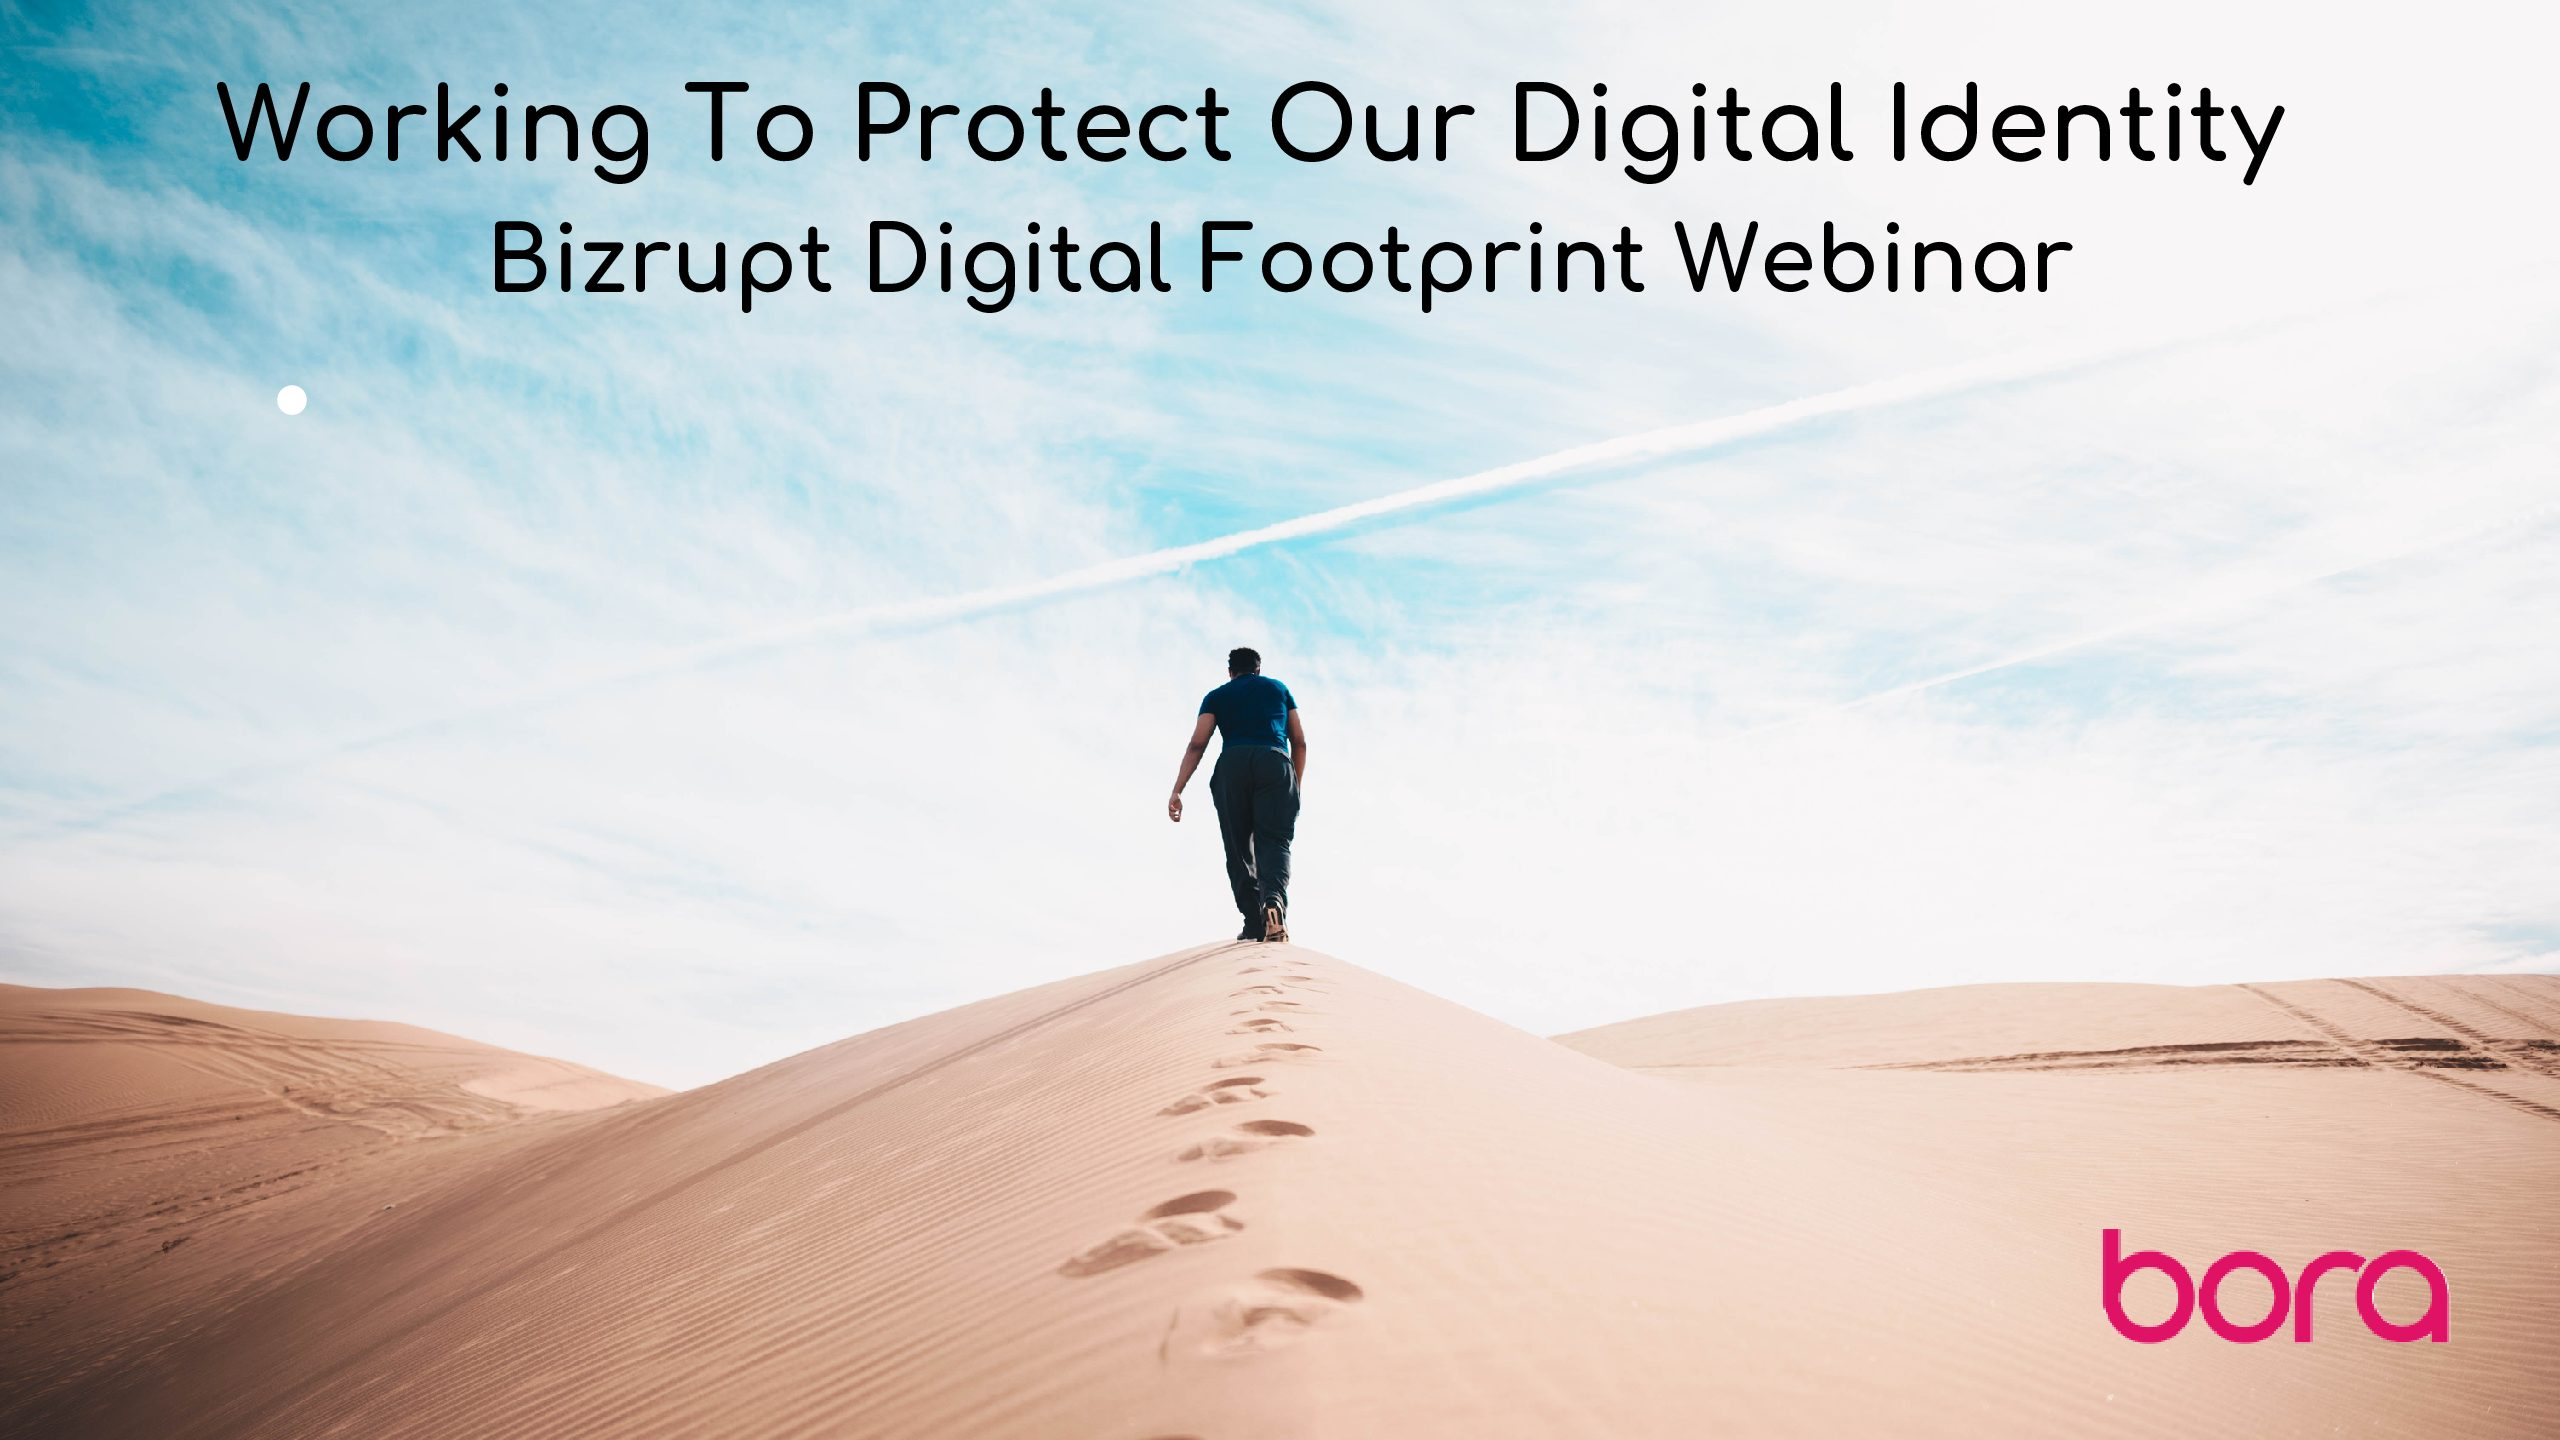 Working To Protect Our Digital Identity